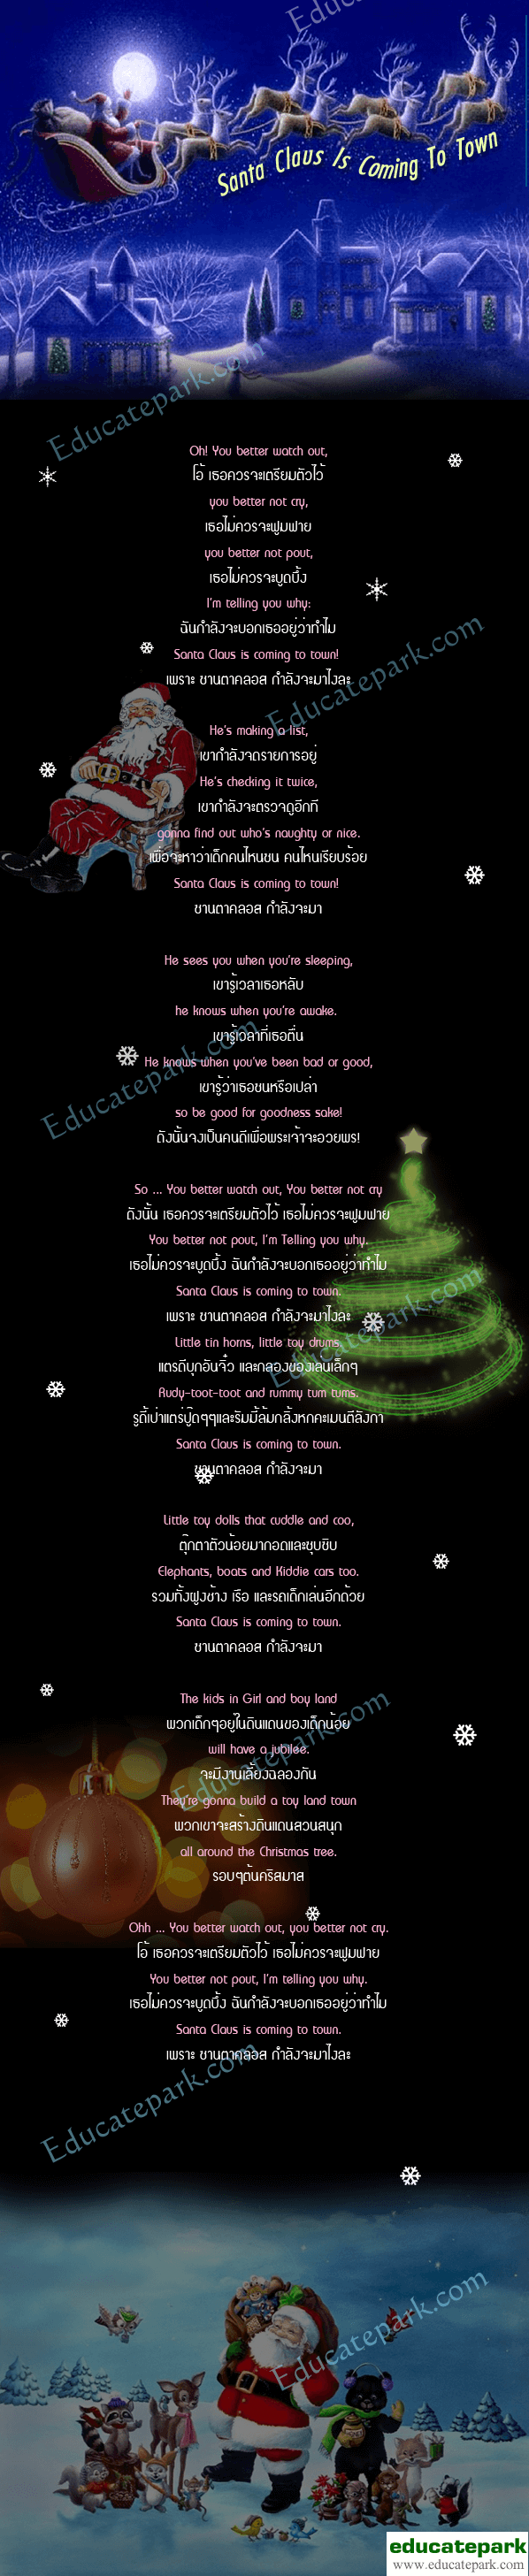 แปลเพลง Santa Claus is Coming to Town